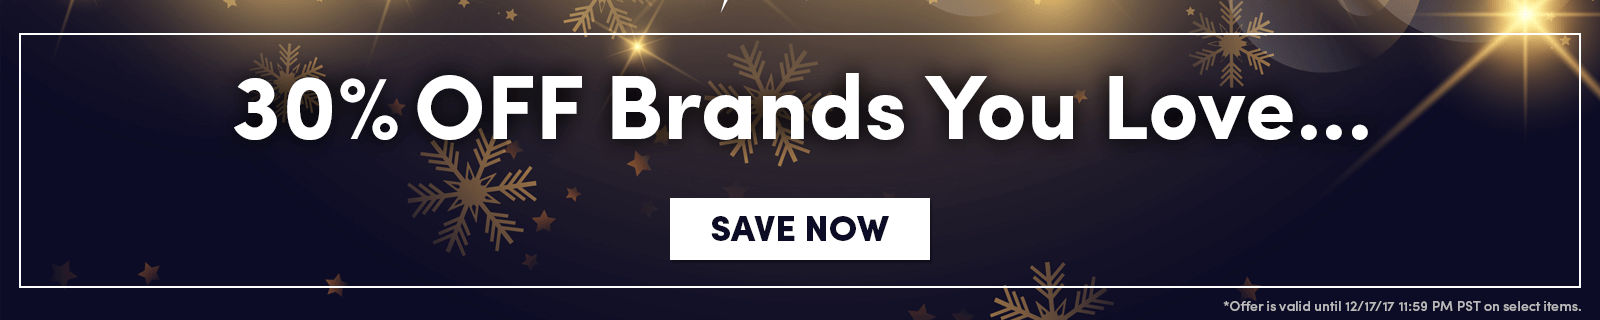 30% OFF Brands You Love... [Save now]